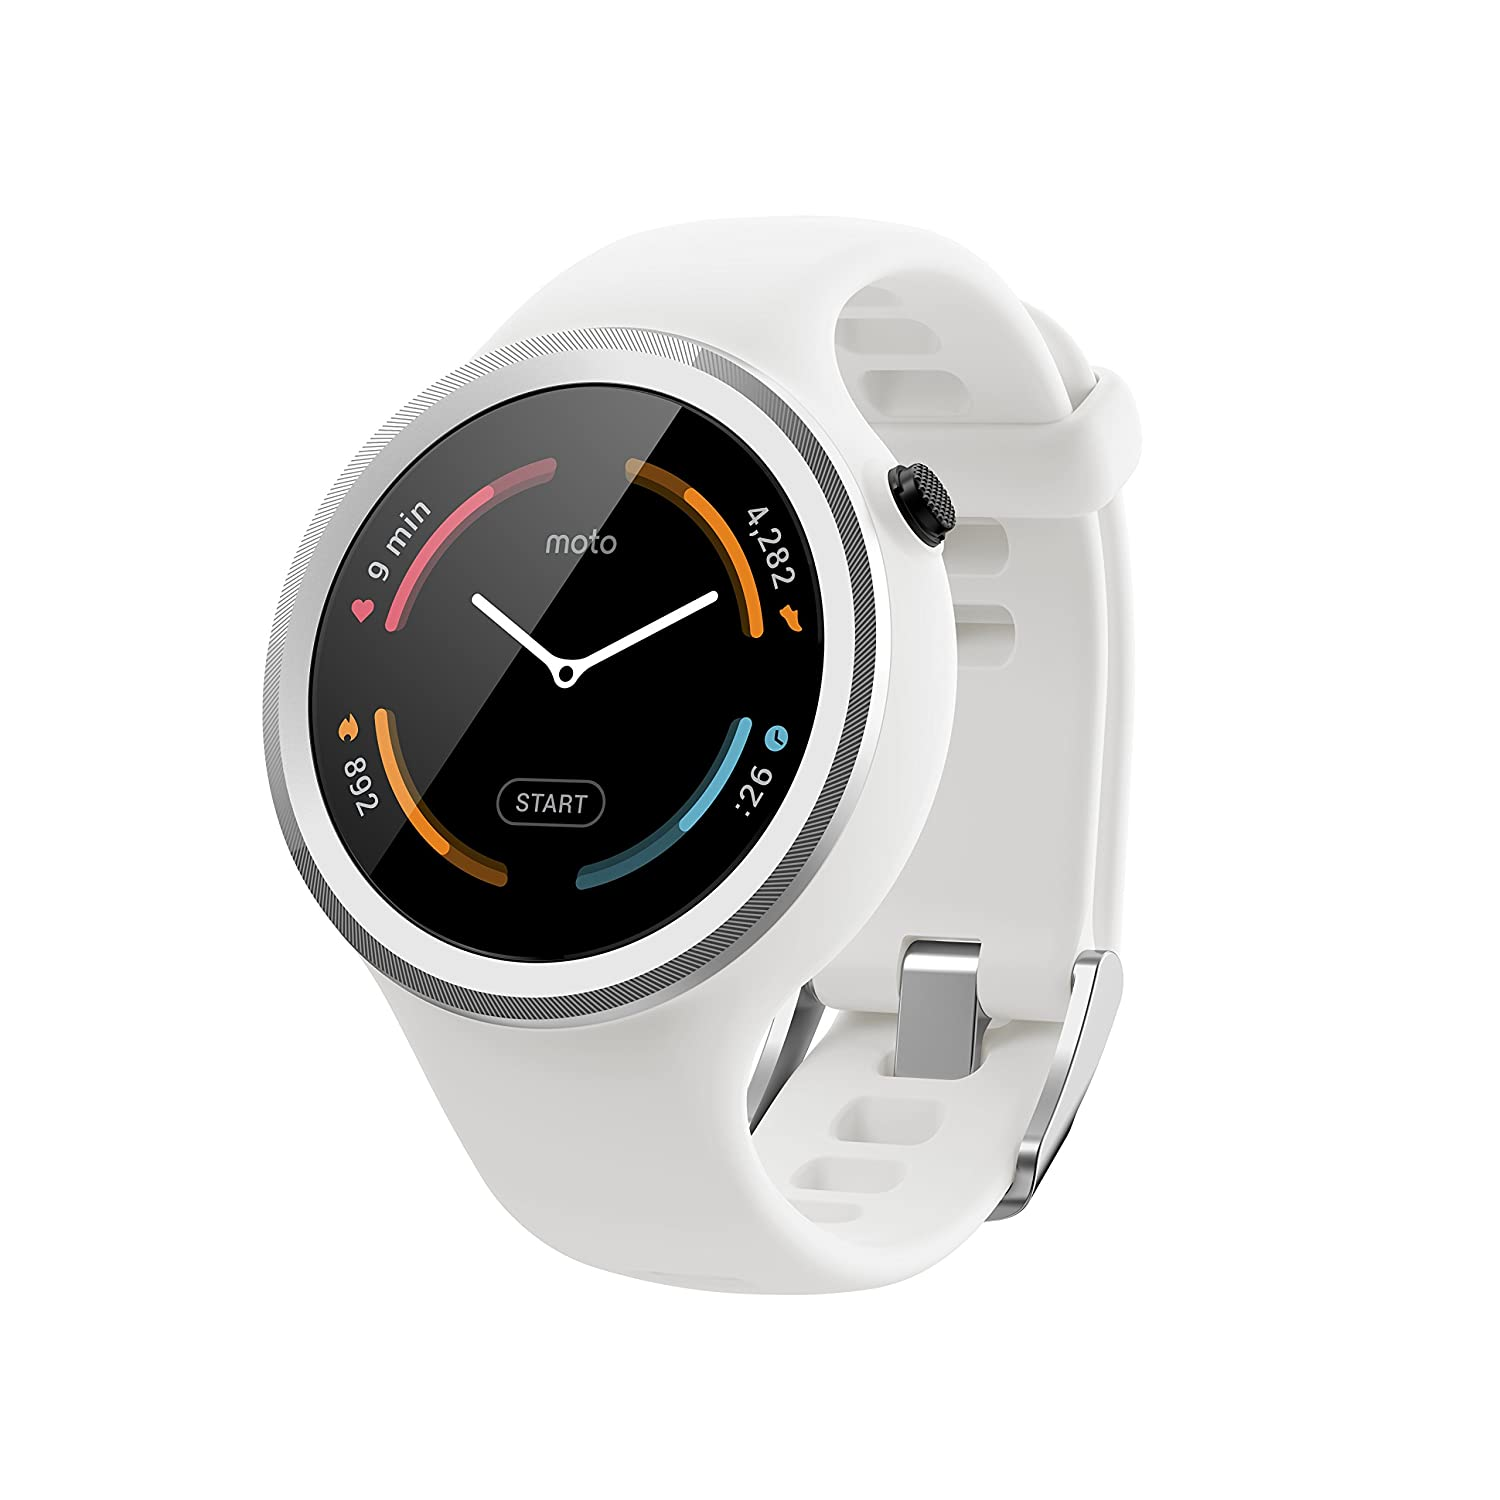 motorola 360 sport. amazon.com: motorola moto 360 sport - 45mm, white: cell phones \u0026 accessories o